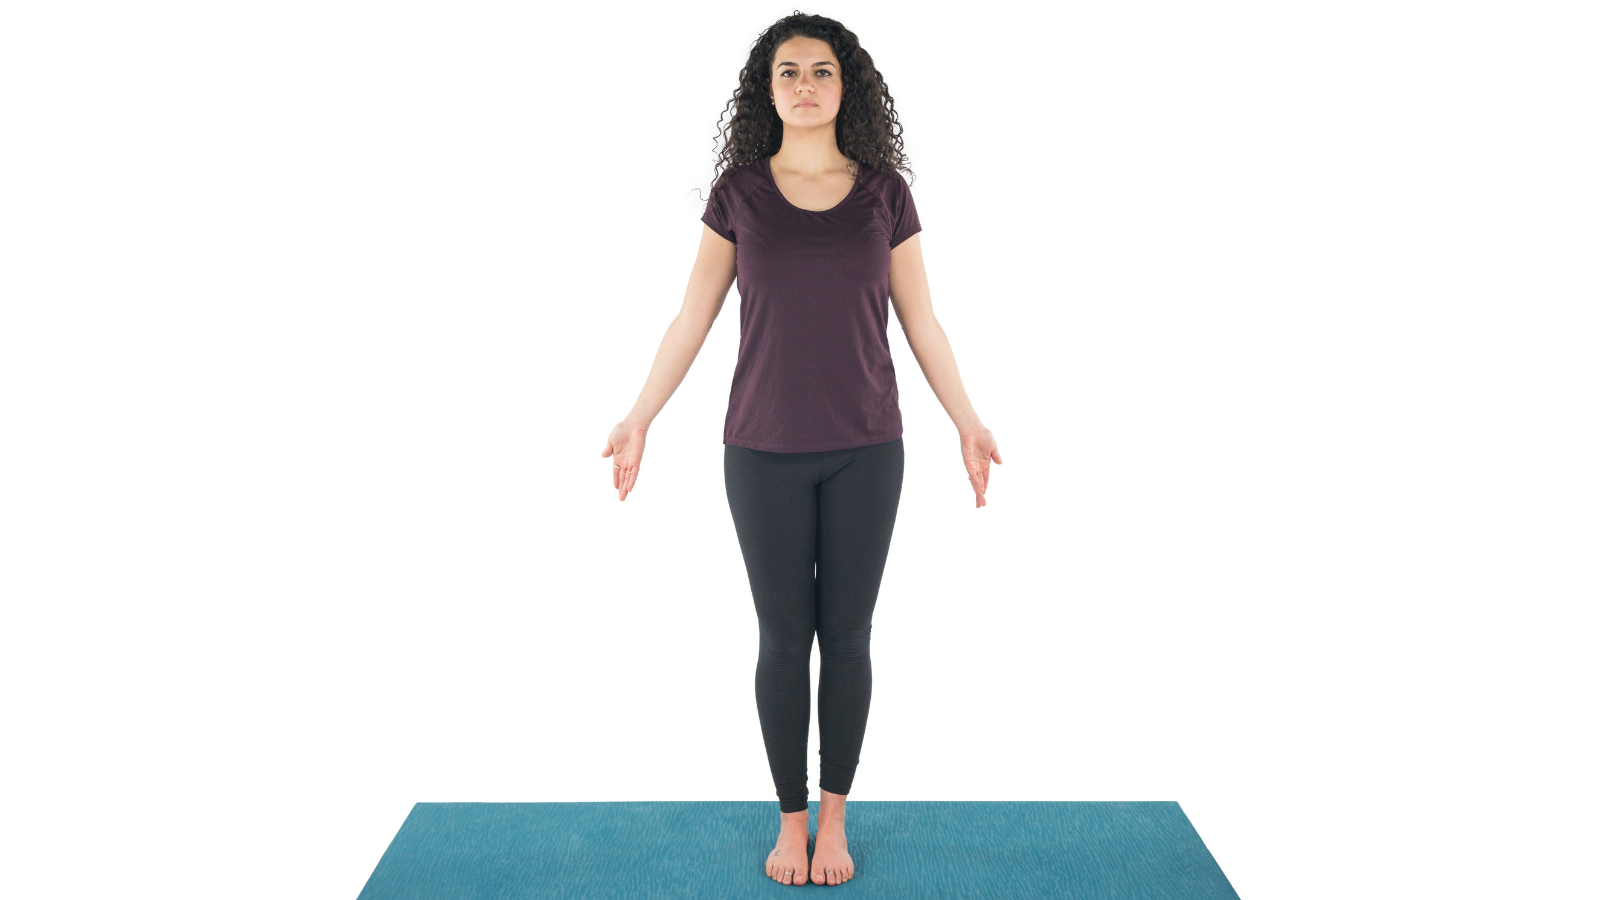 Tadasana or Mountain Pose and its positive effect on posture and spine health